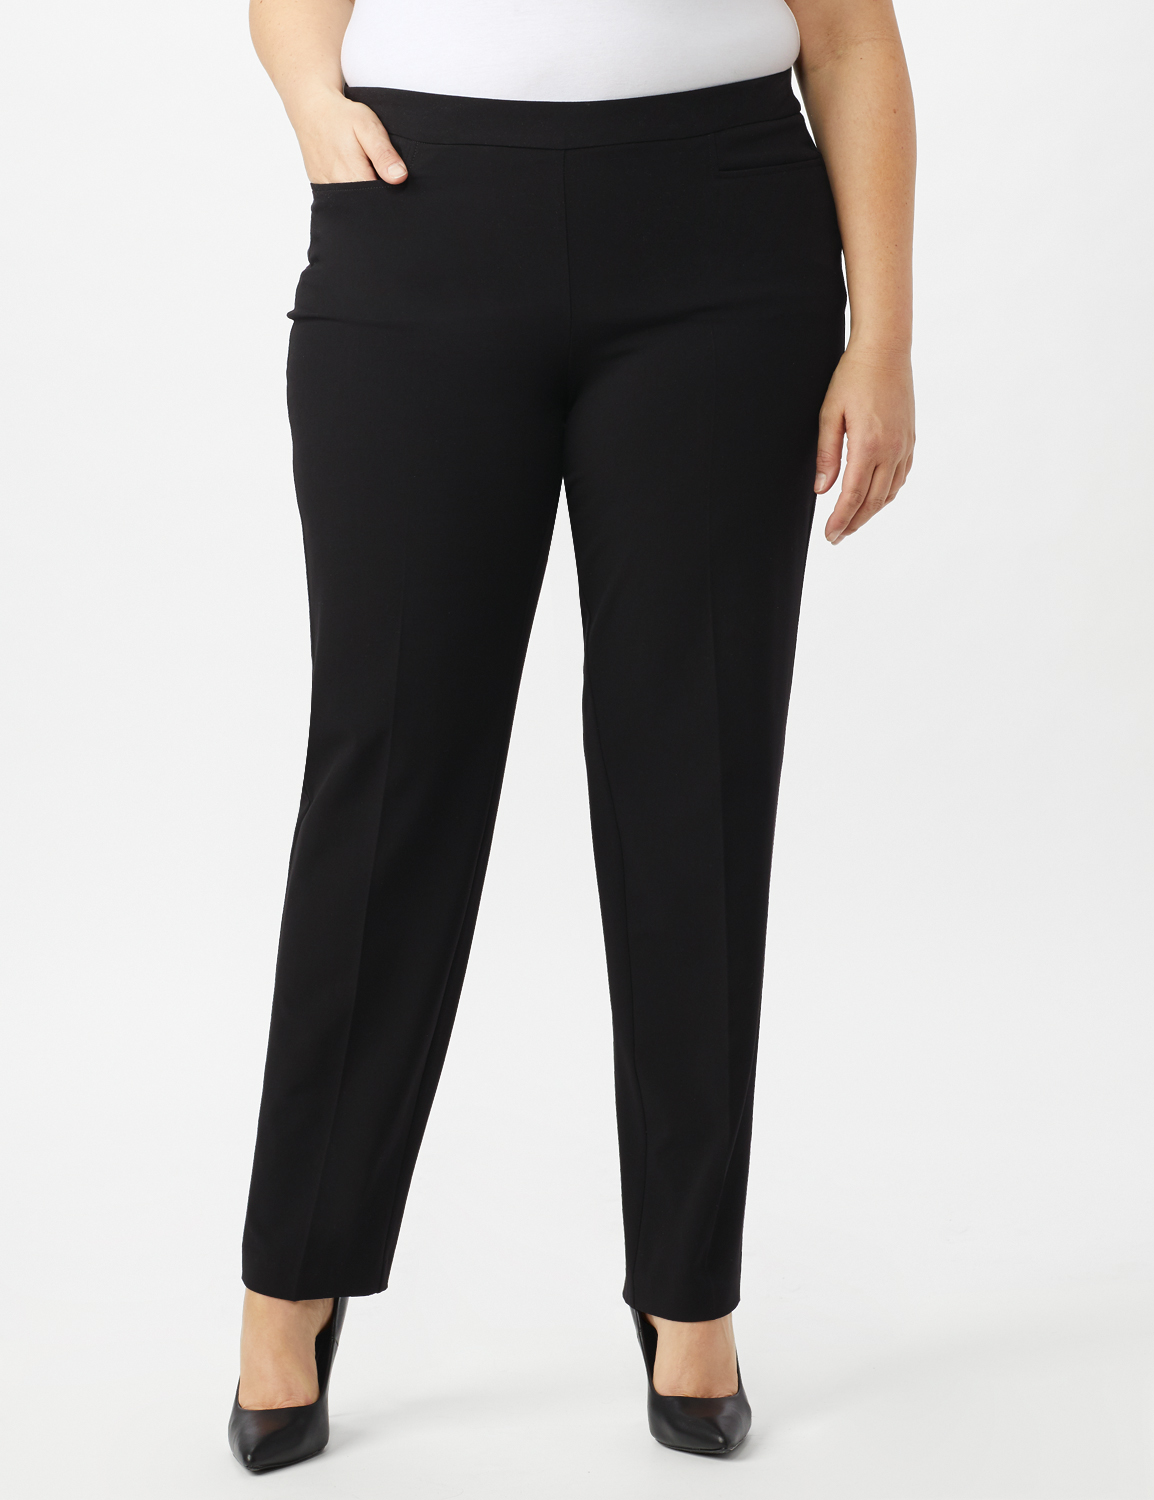 Secret Agent Pull On Tummy Control Pants with Pockets - Short Length -Black - Front